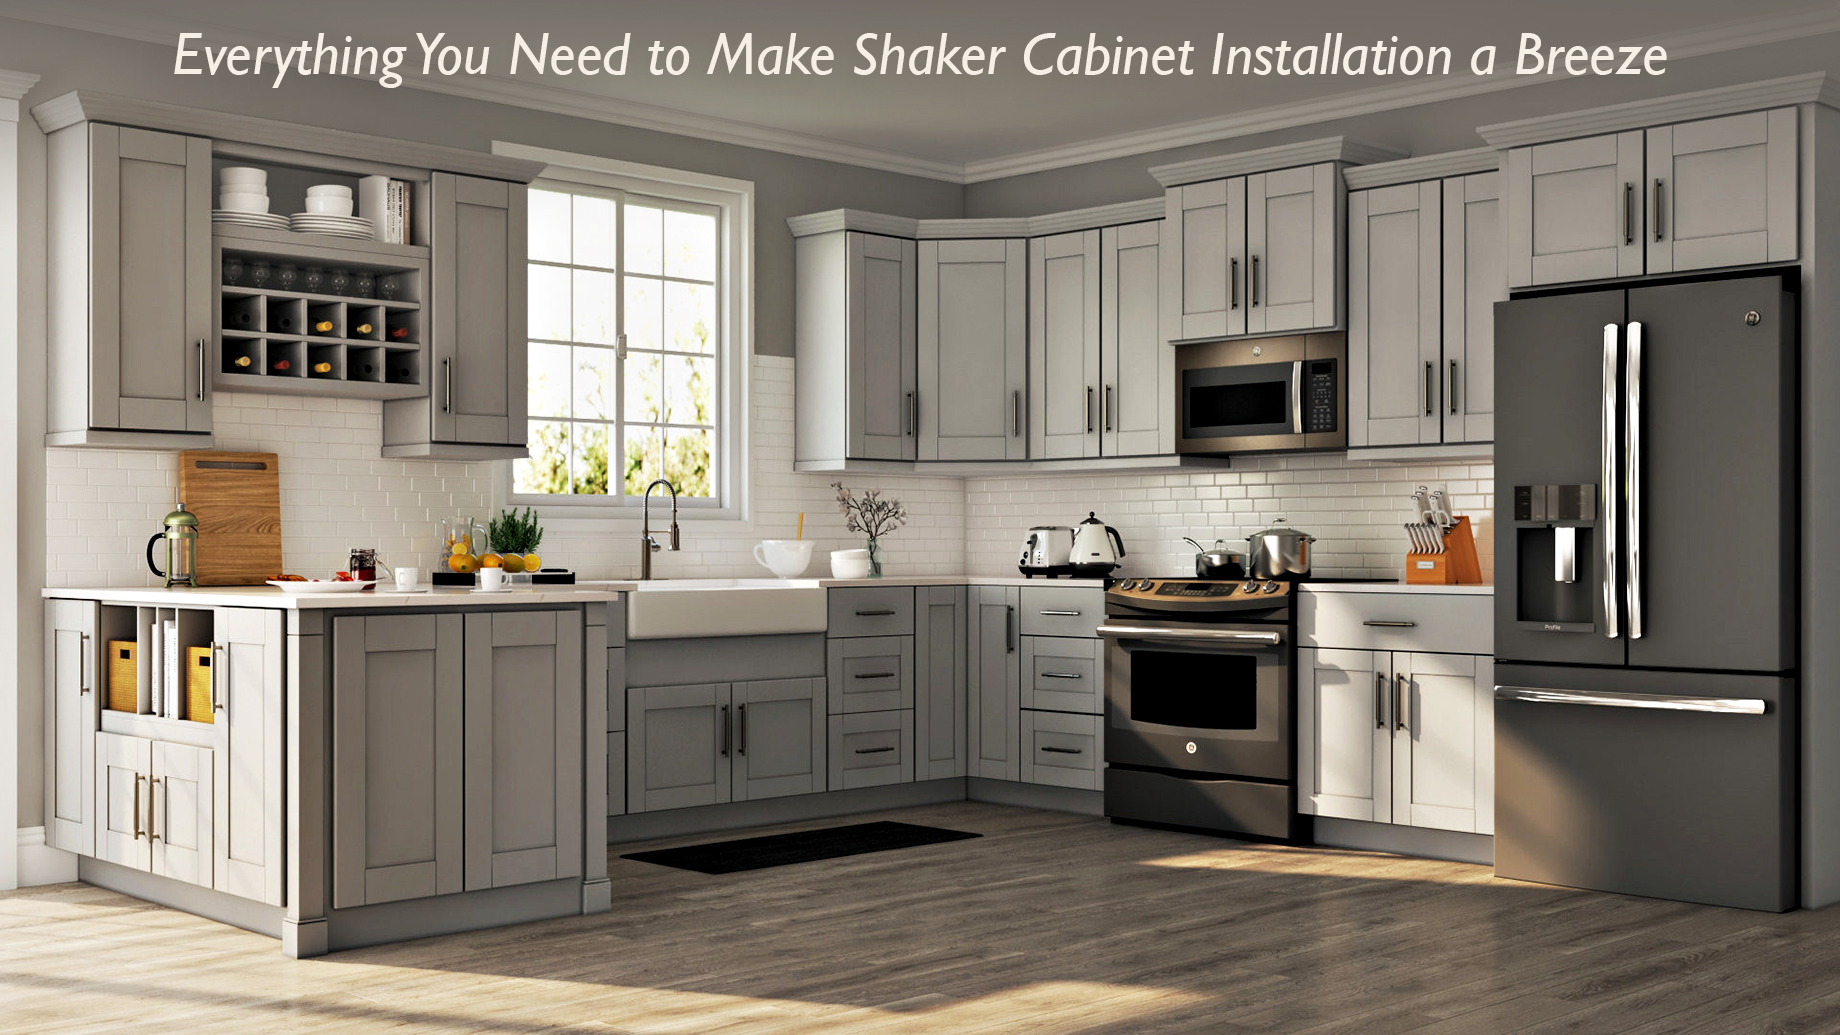 Interior Design - Everything You Need to Make Shaker Cabinet Installation a Breeze